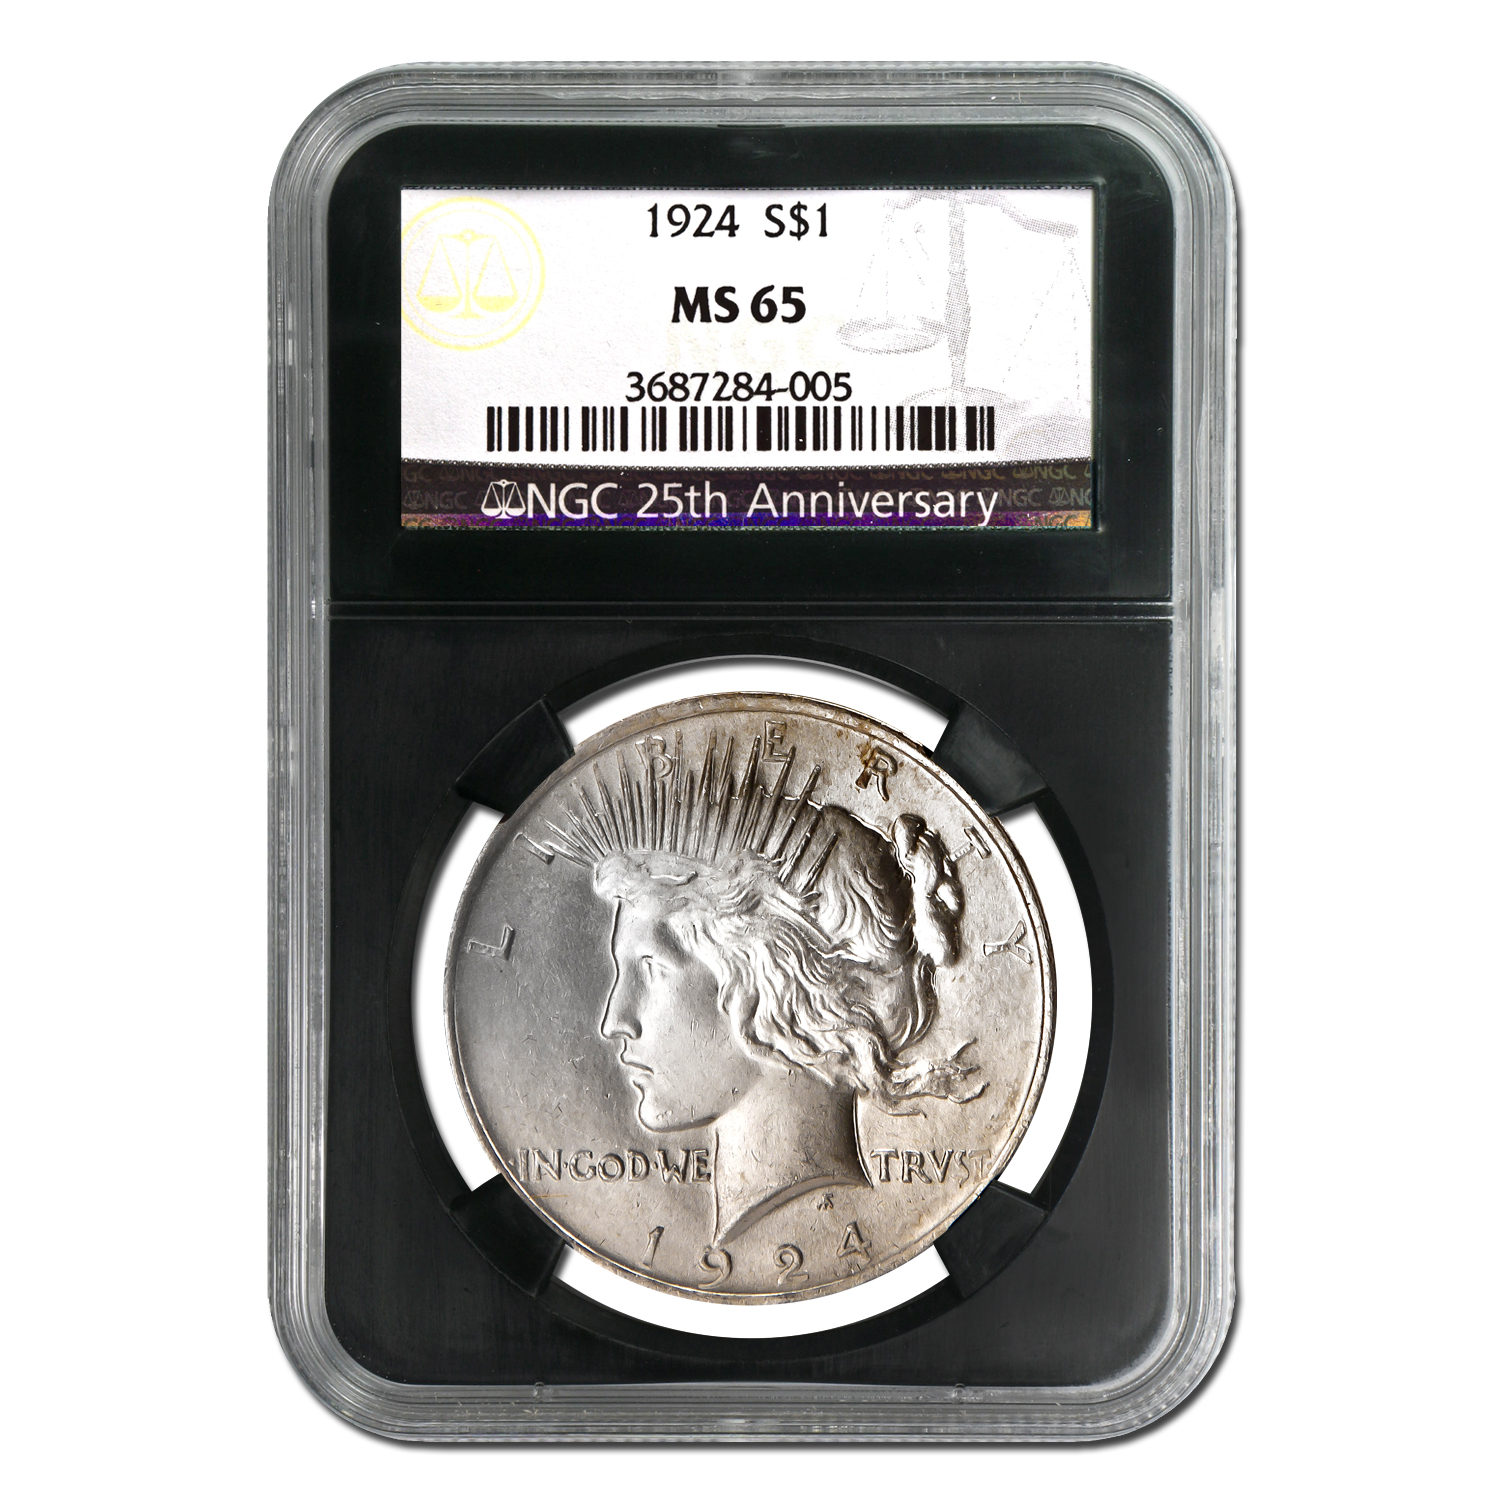 1922-1925 Peace Silver Dollar Set 4 Coins MS-65 NGC Black Holders